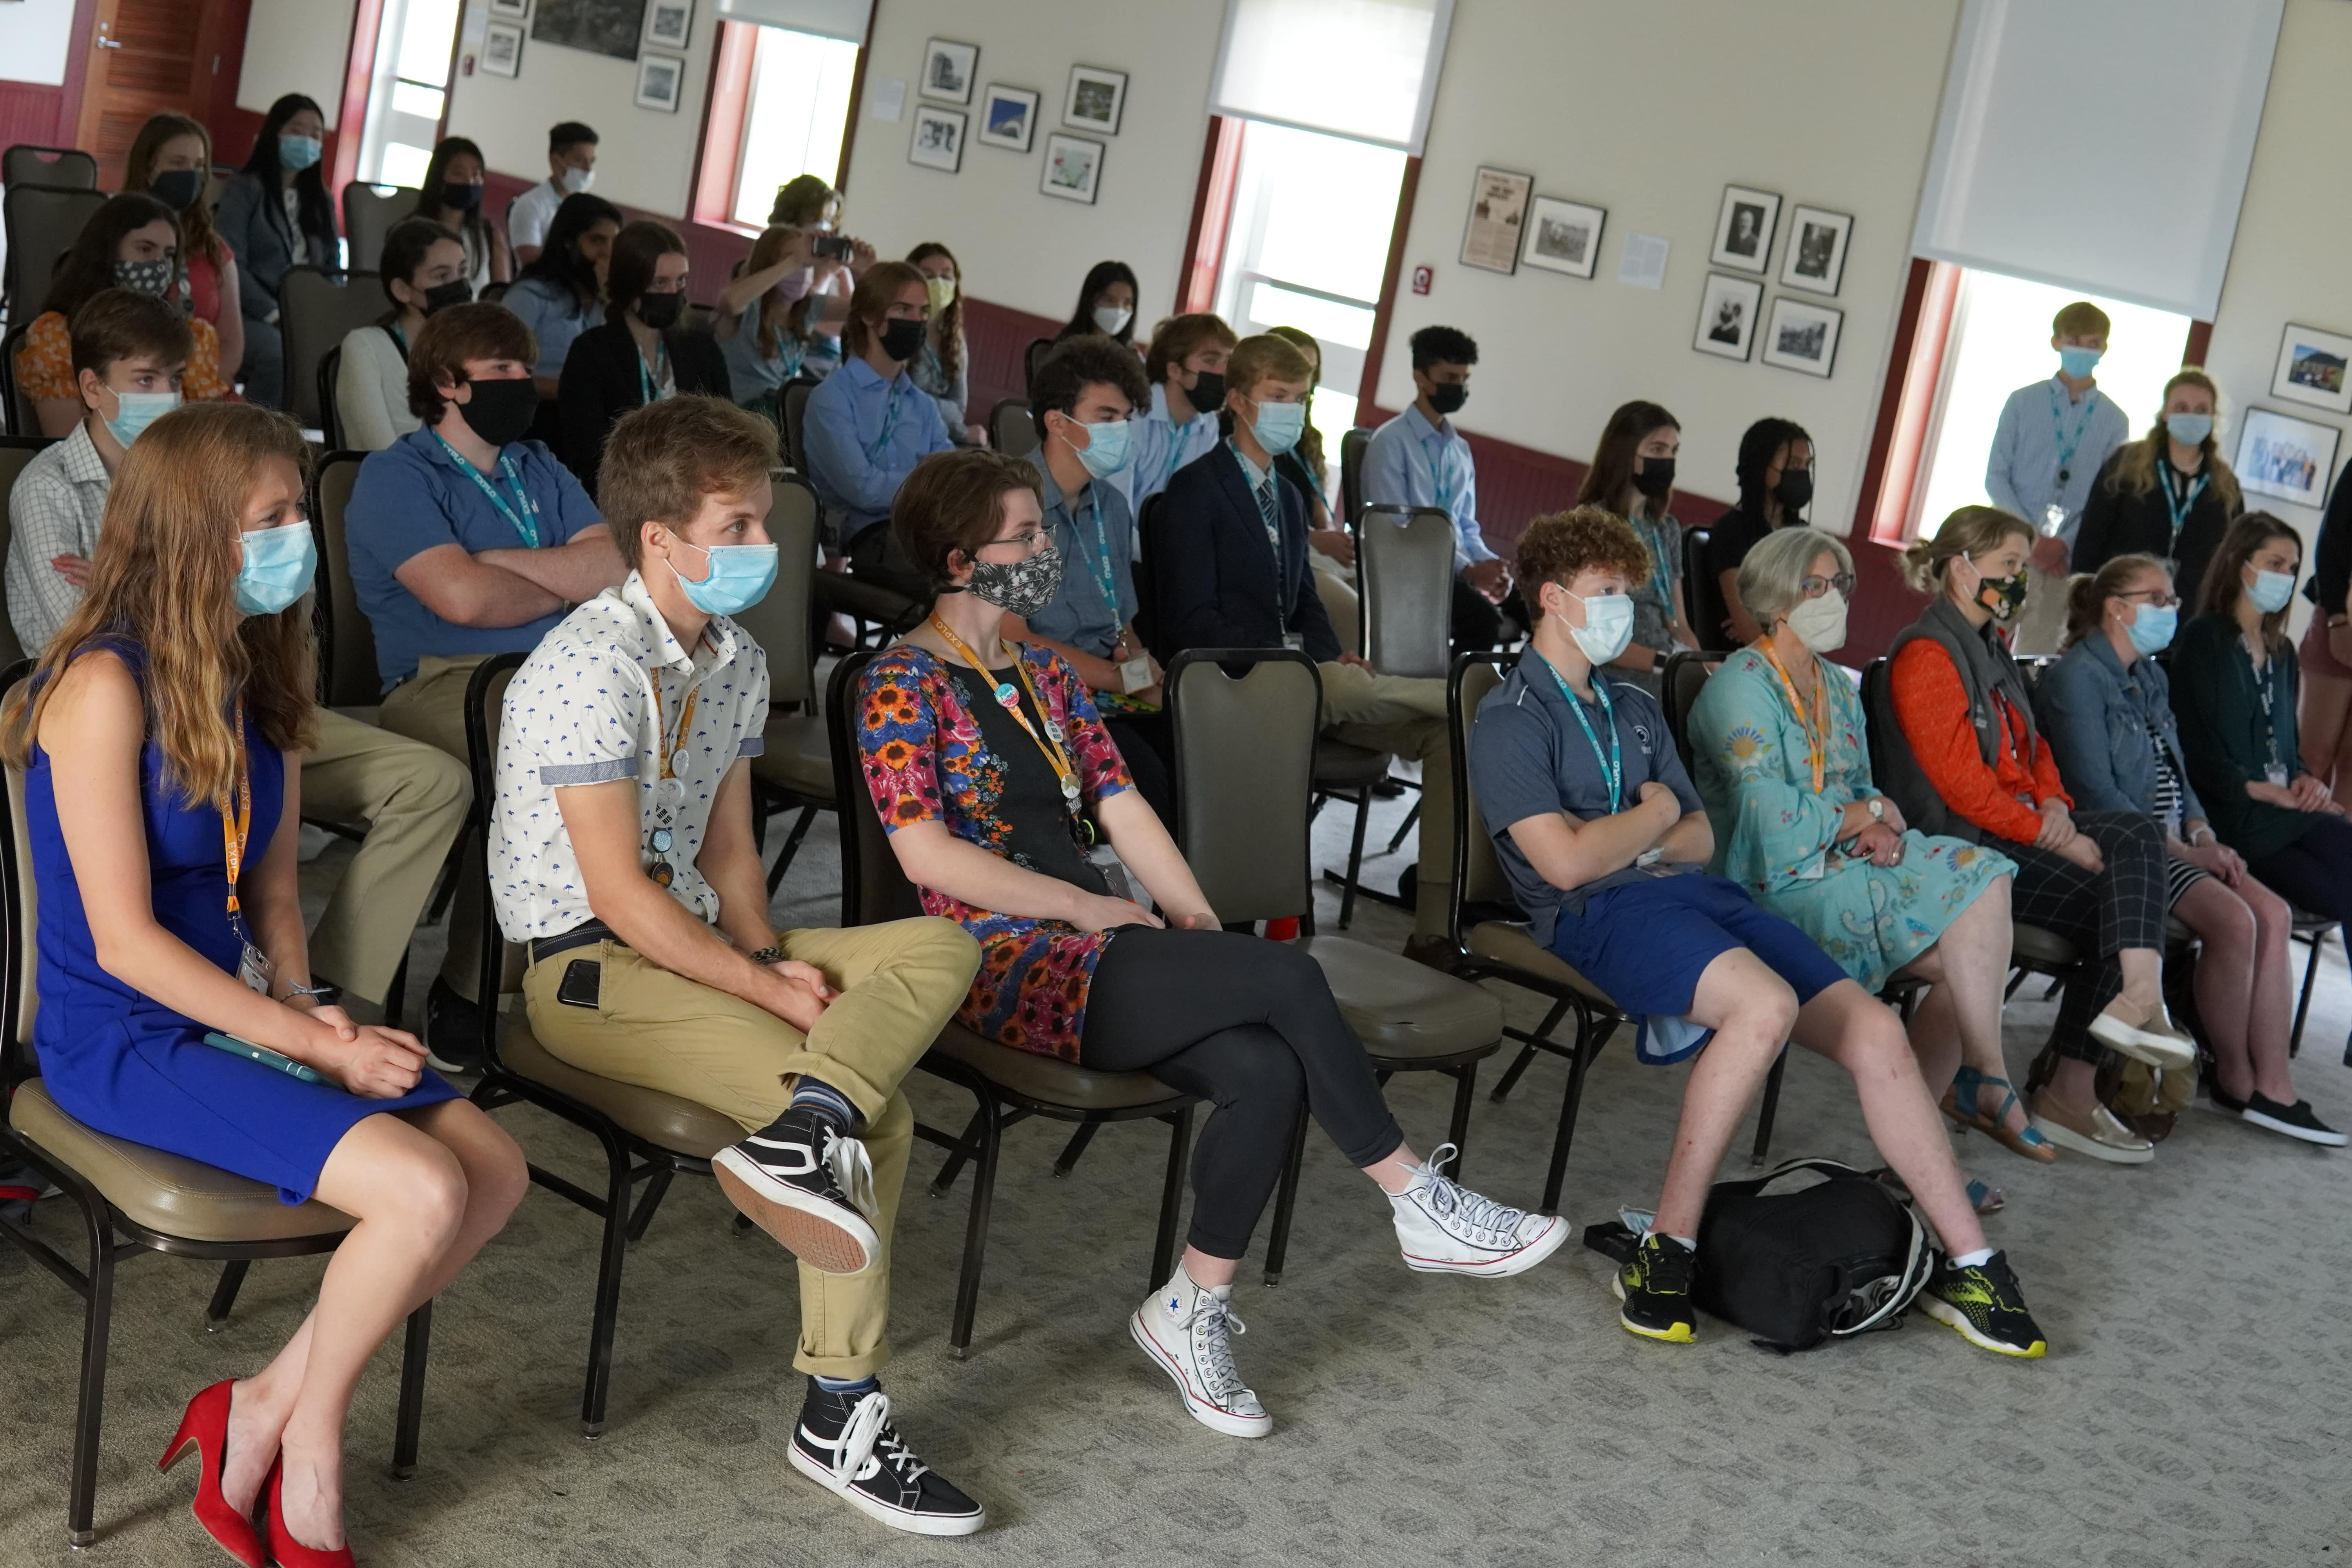 Students and staff sit in the audience and listen to presentations.